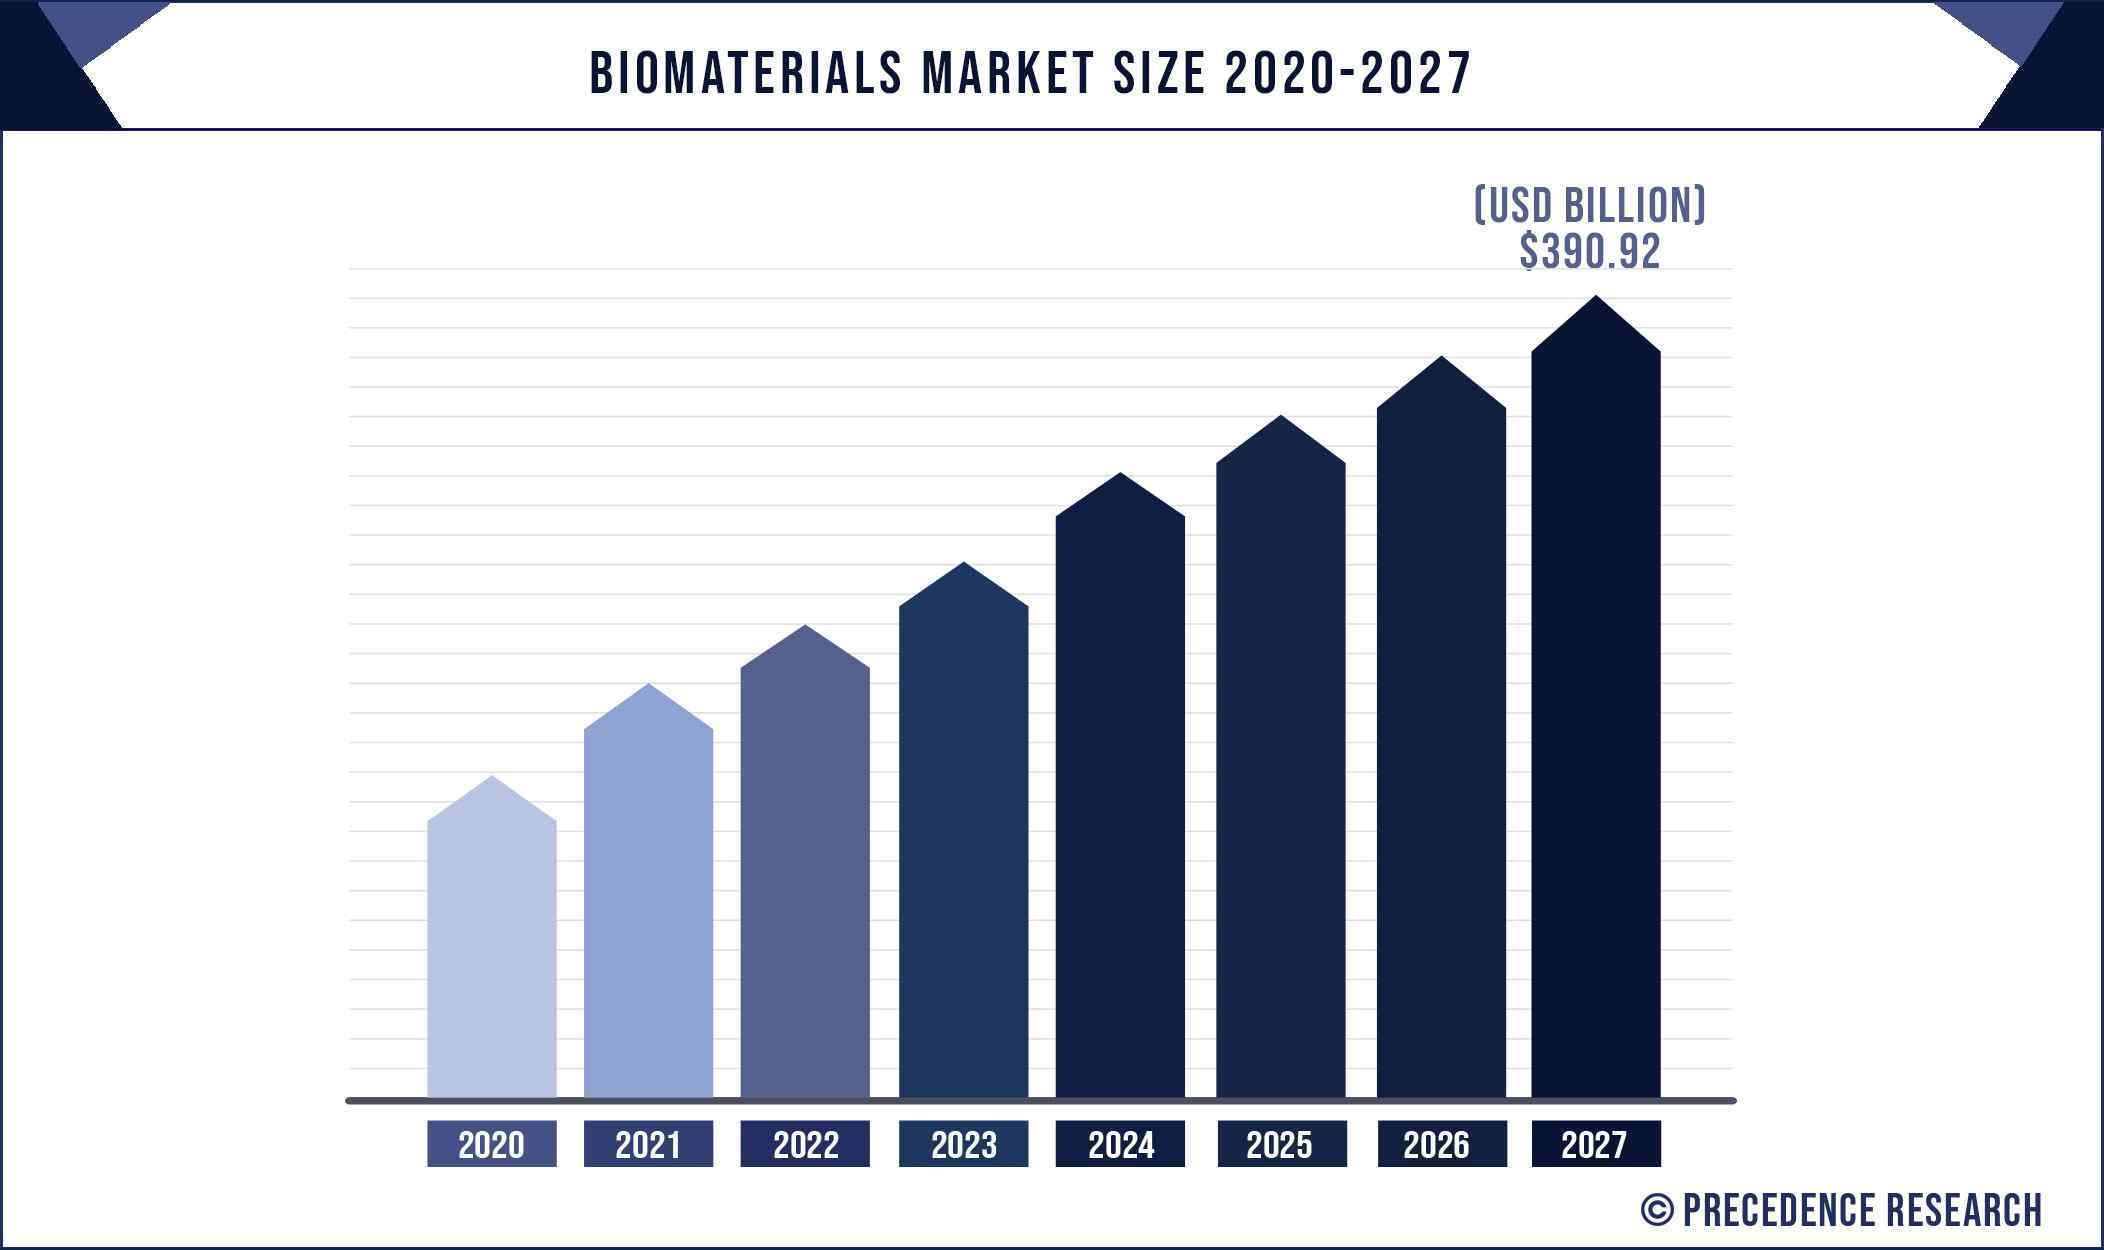 Biomaterials Market Size 2020 to 2027